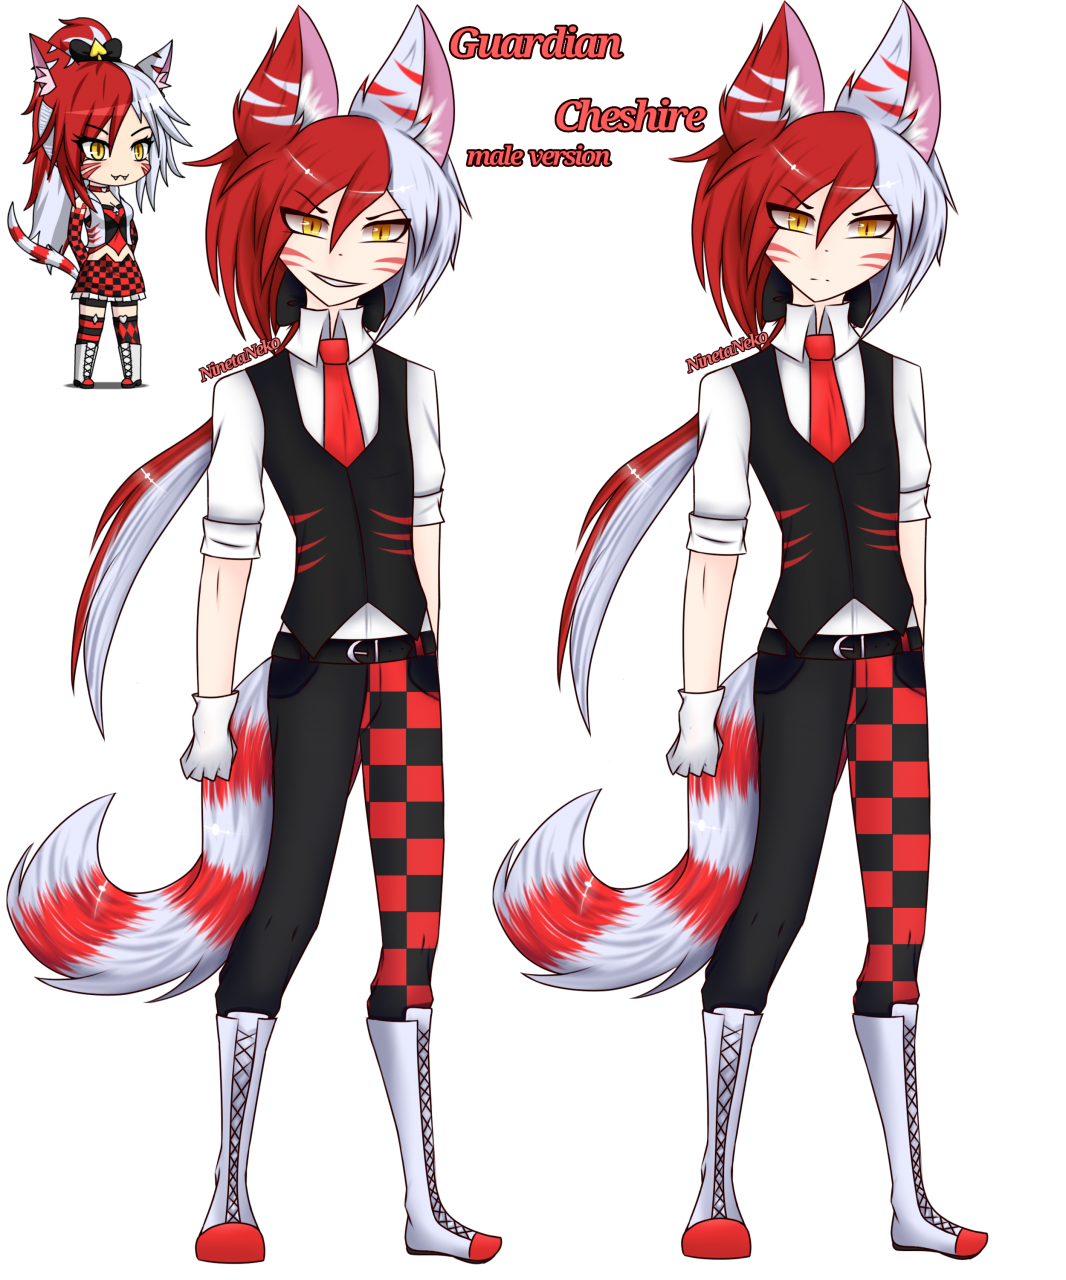 Guardian Cheshire gender bend